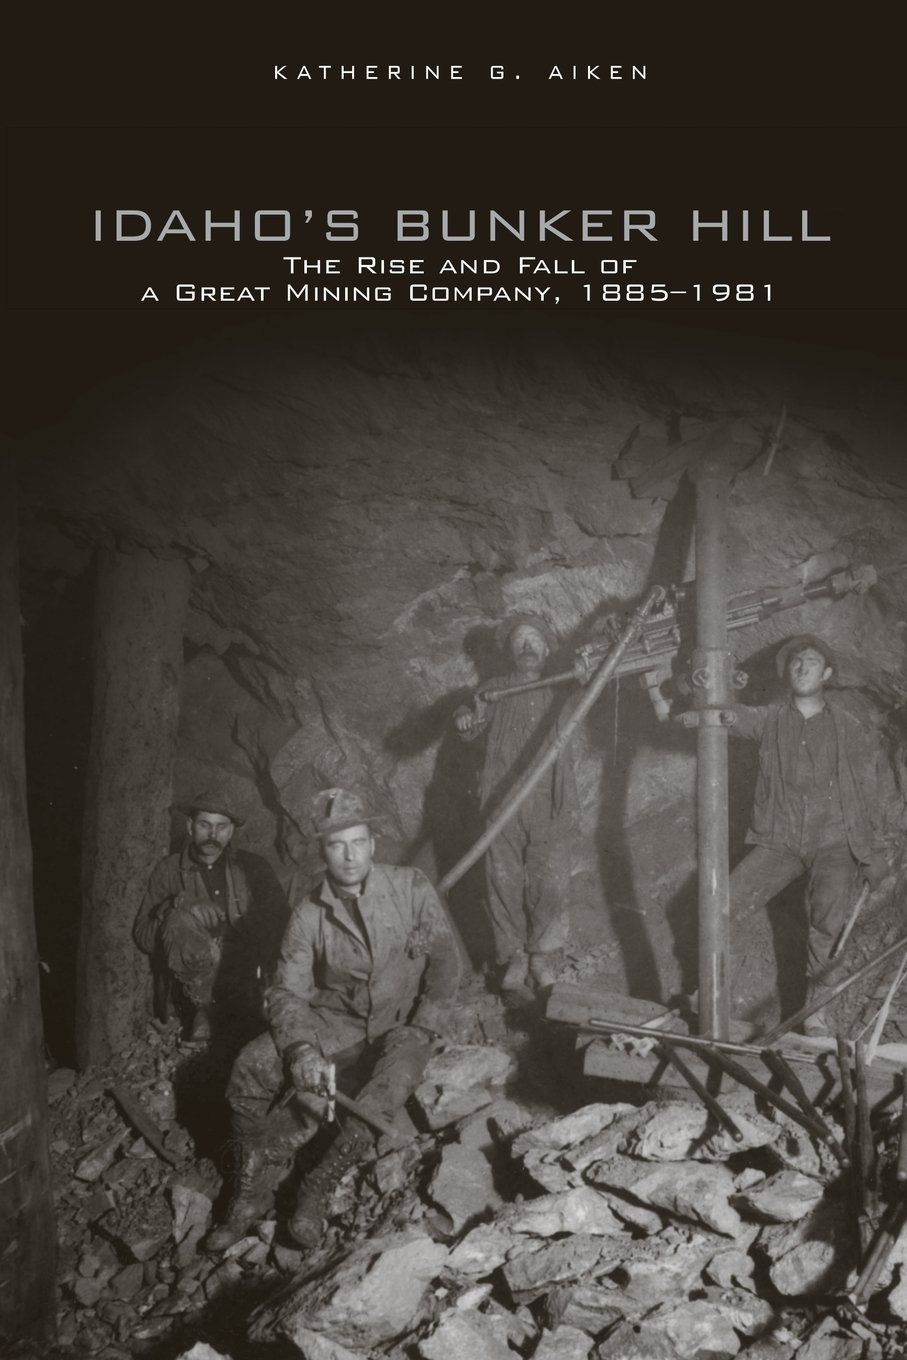 Idaho's Bunker Hill: The Rise and Fall of a Great Mining Company, 1885–1981